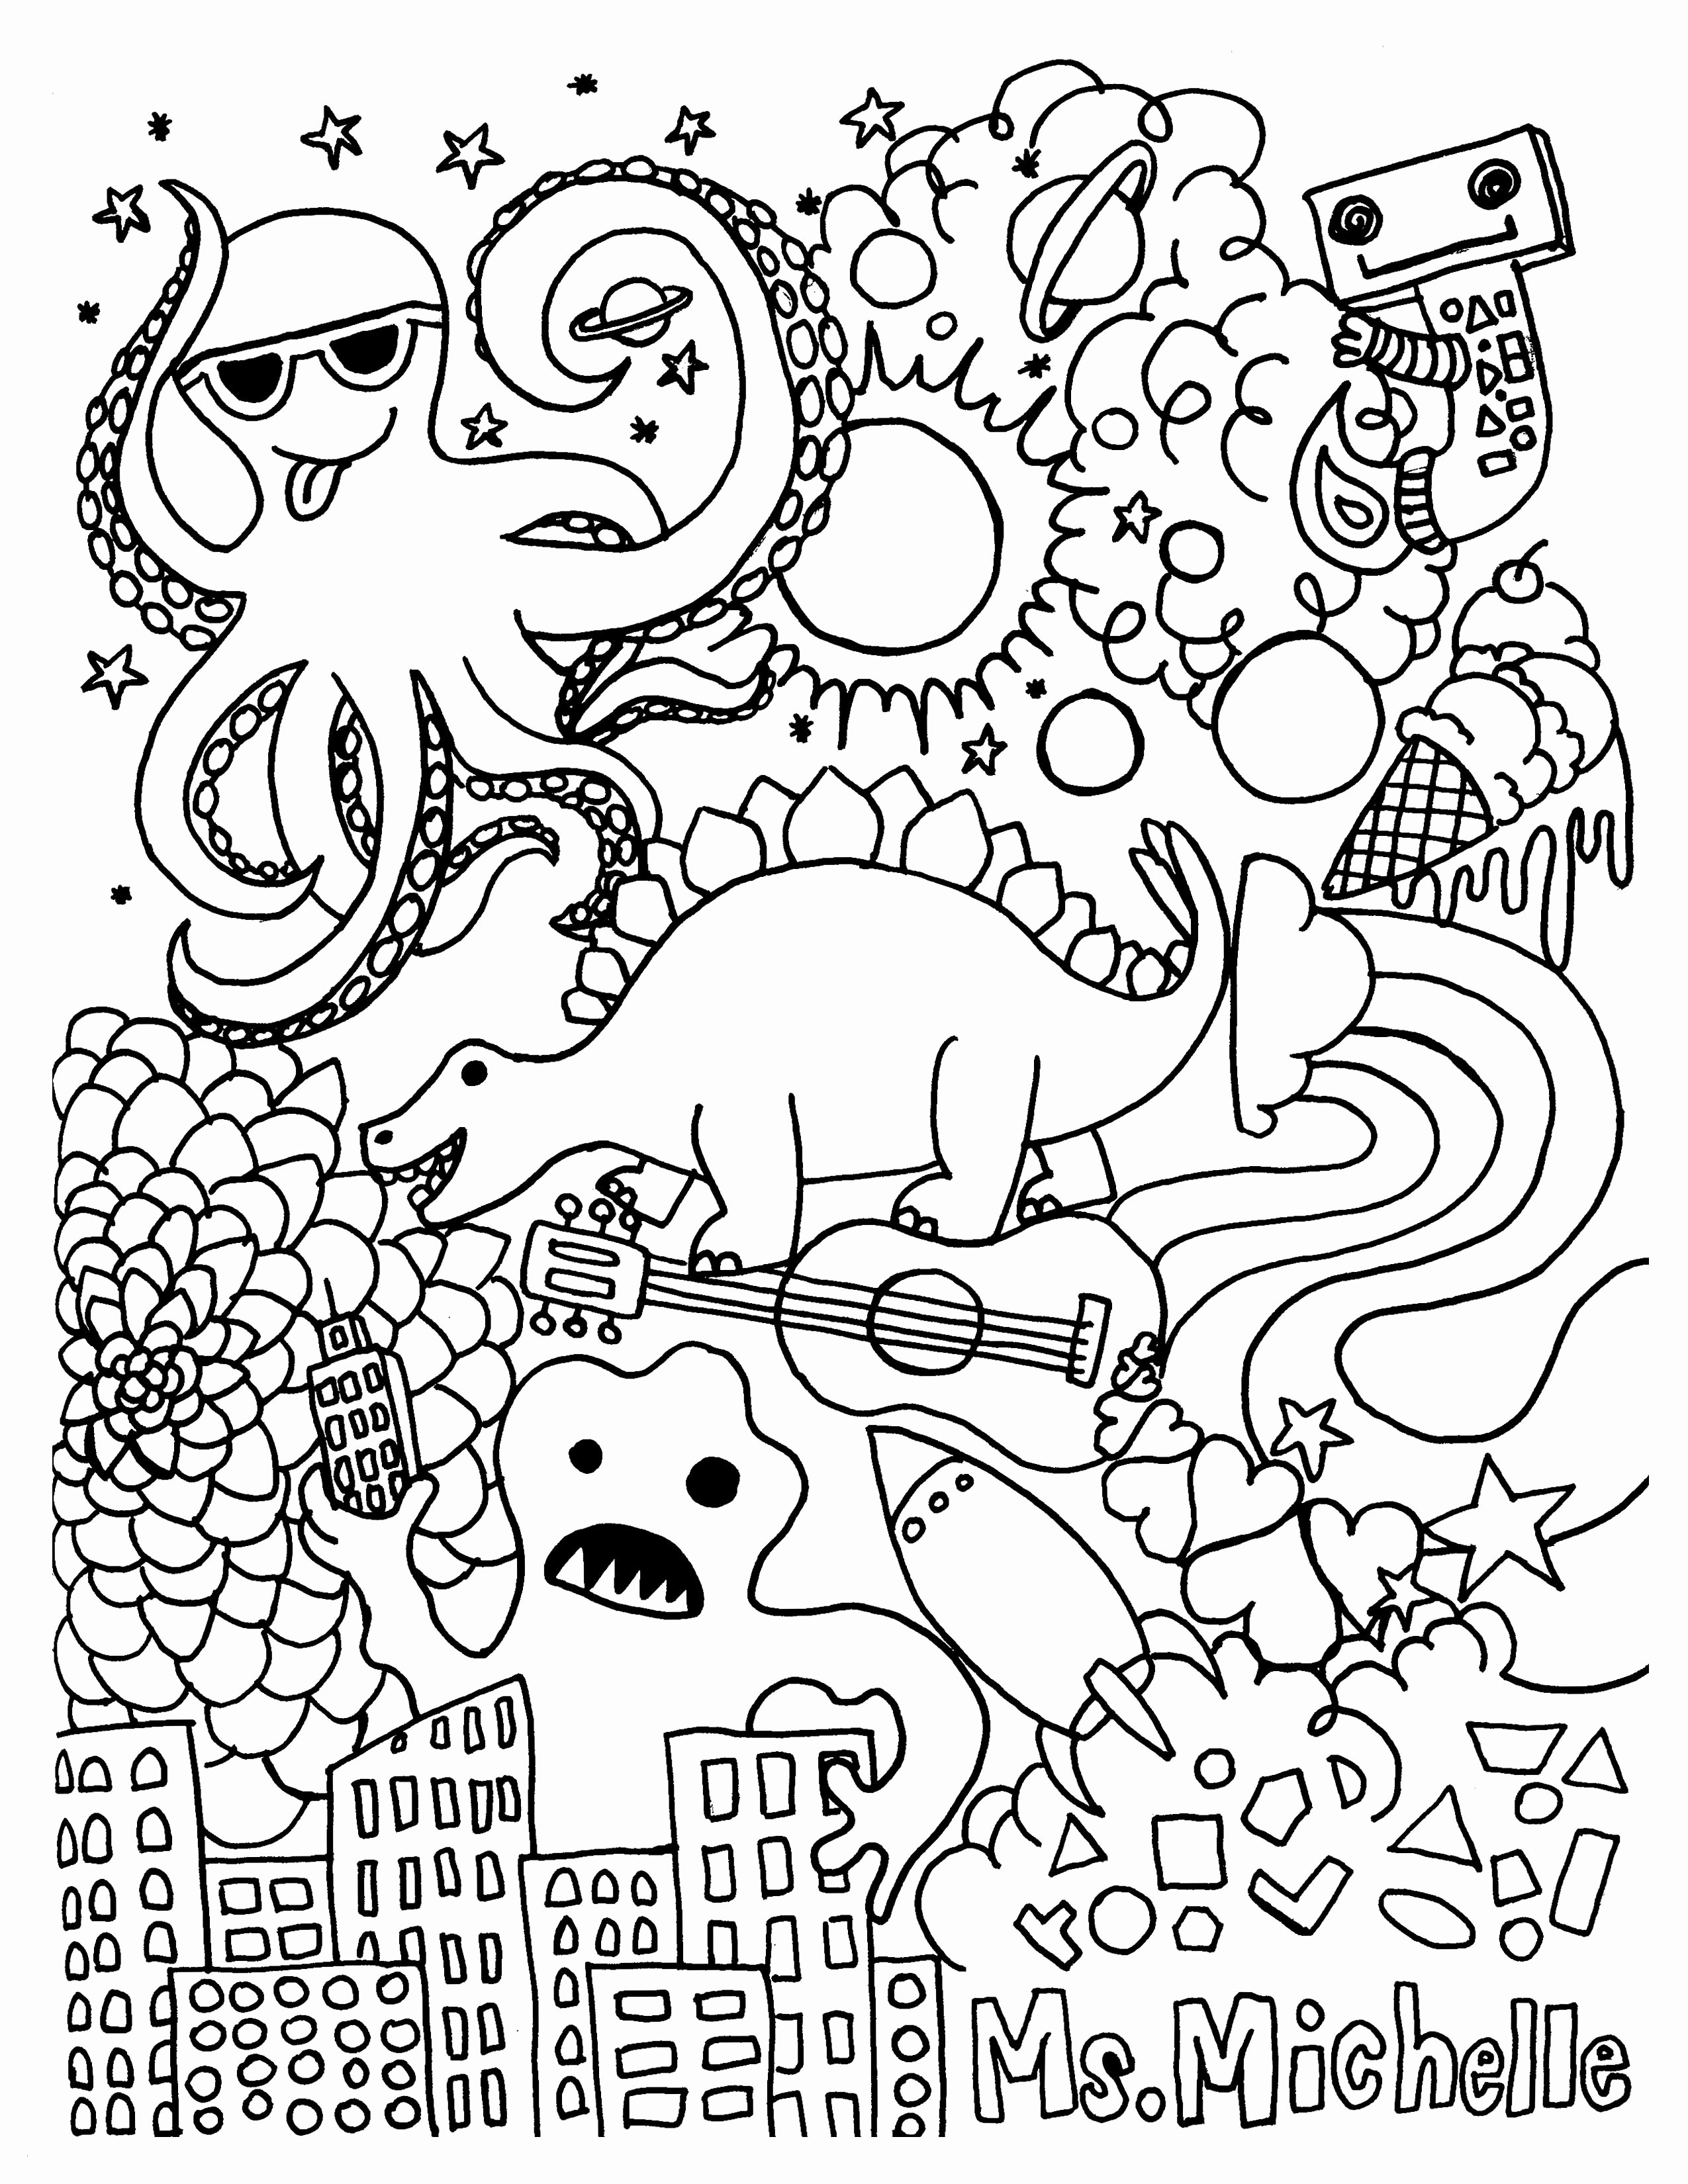 Coloring Pages for Grandparents Day  Collection 8b - To print for your project